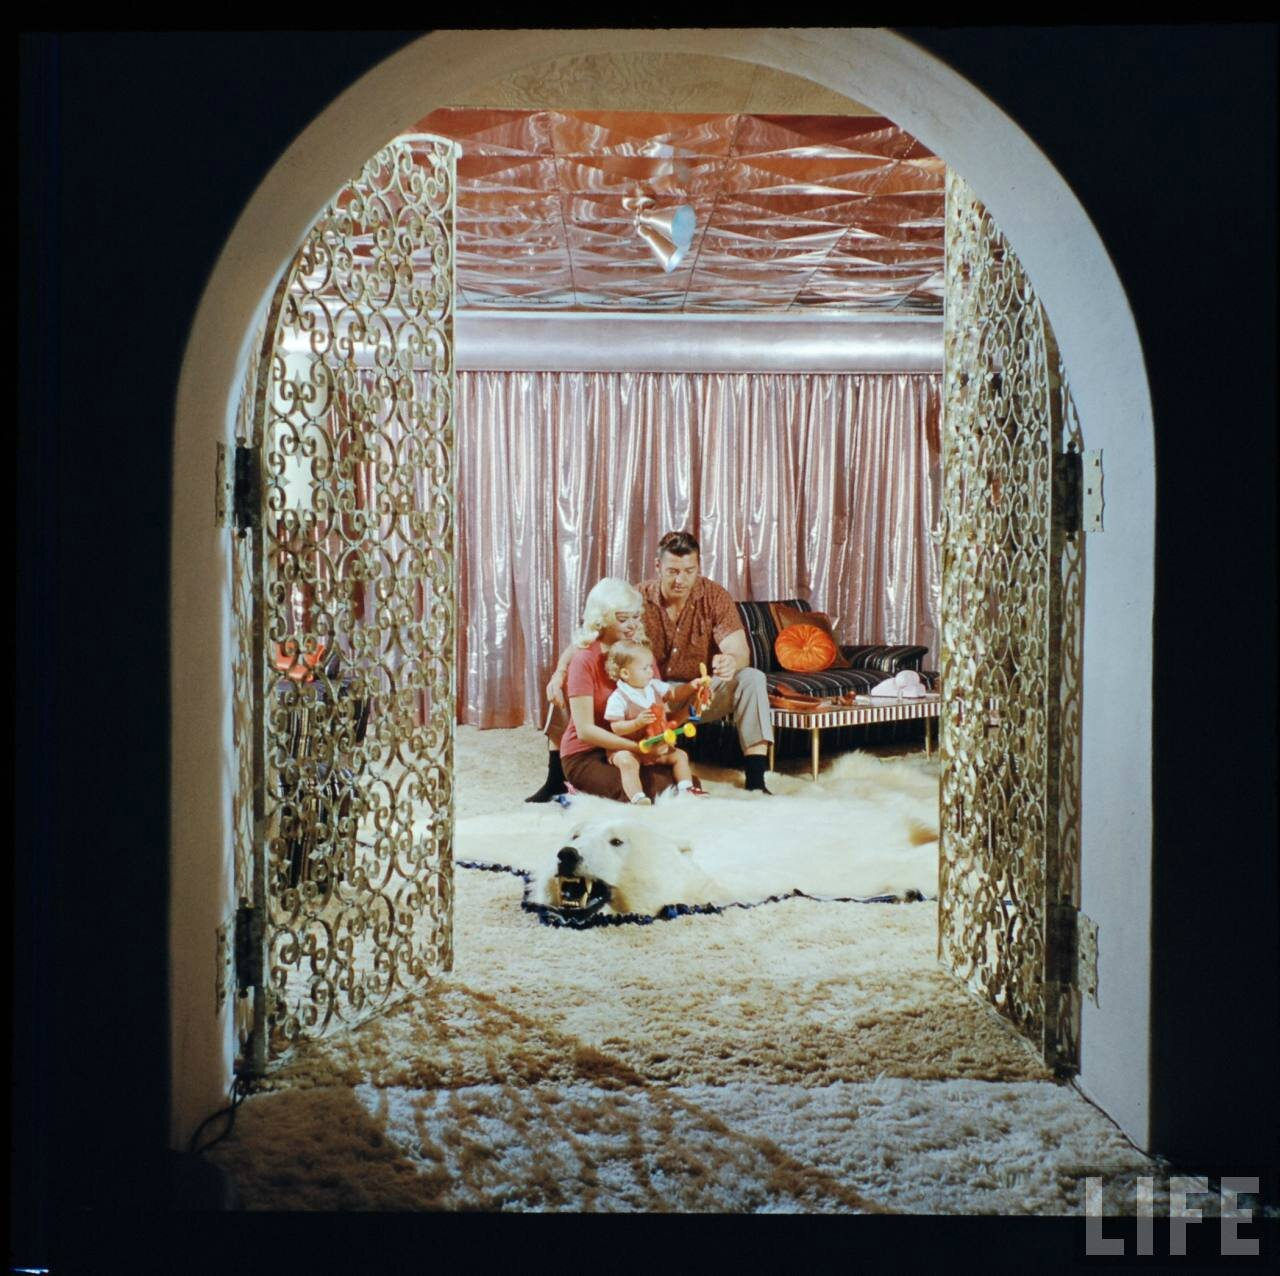 jayne_pink_palace-inside-lounge_second-by_allan_grant-with_miklos-1